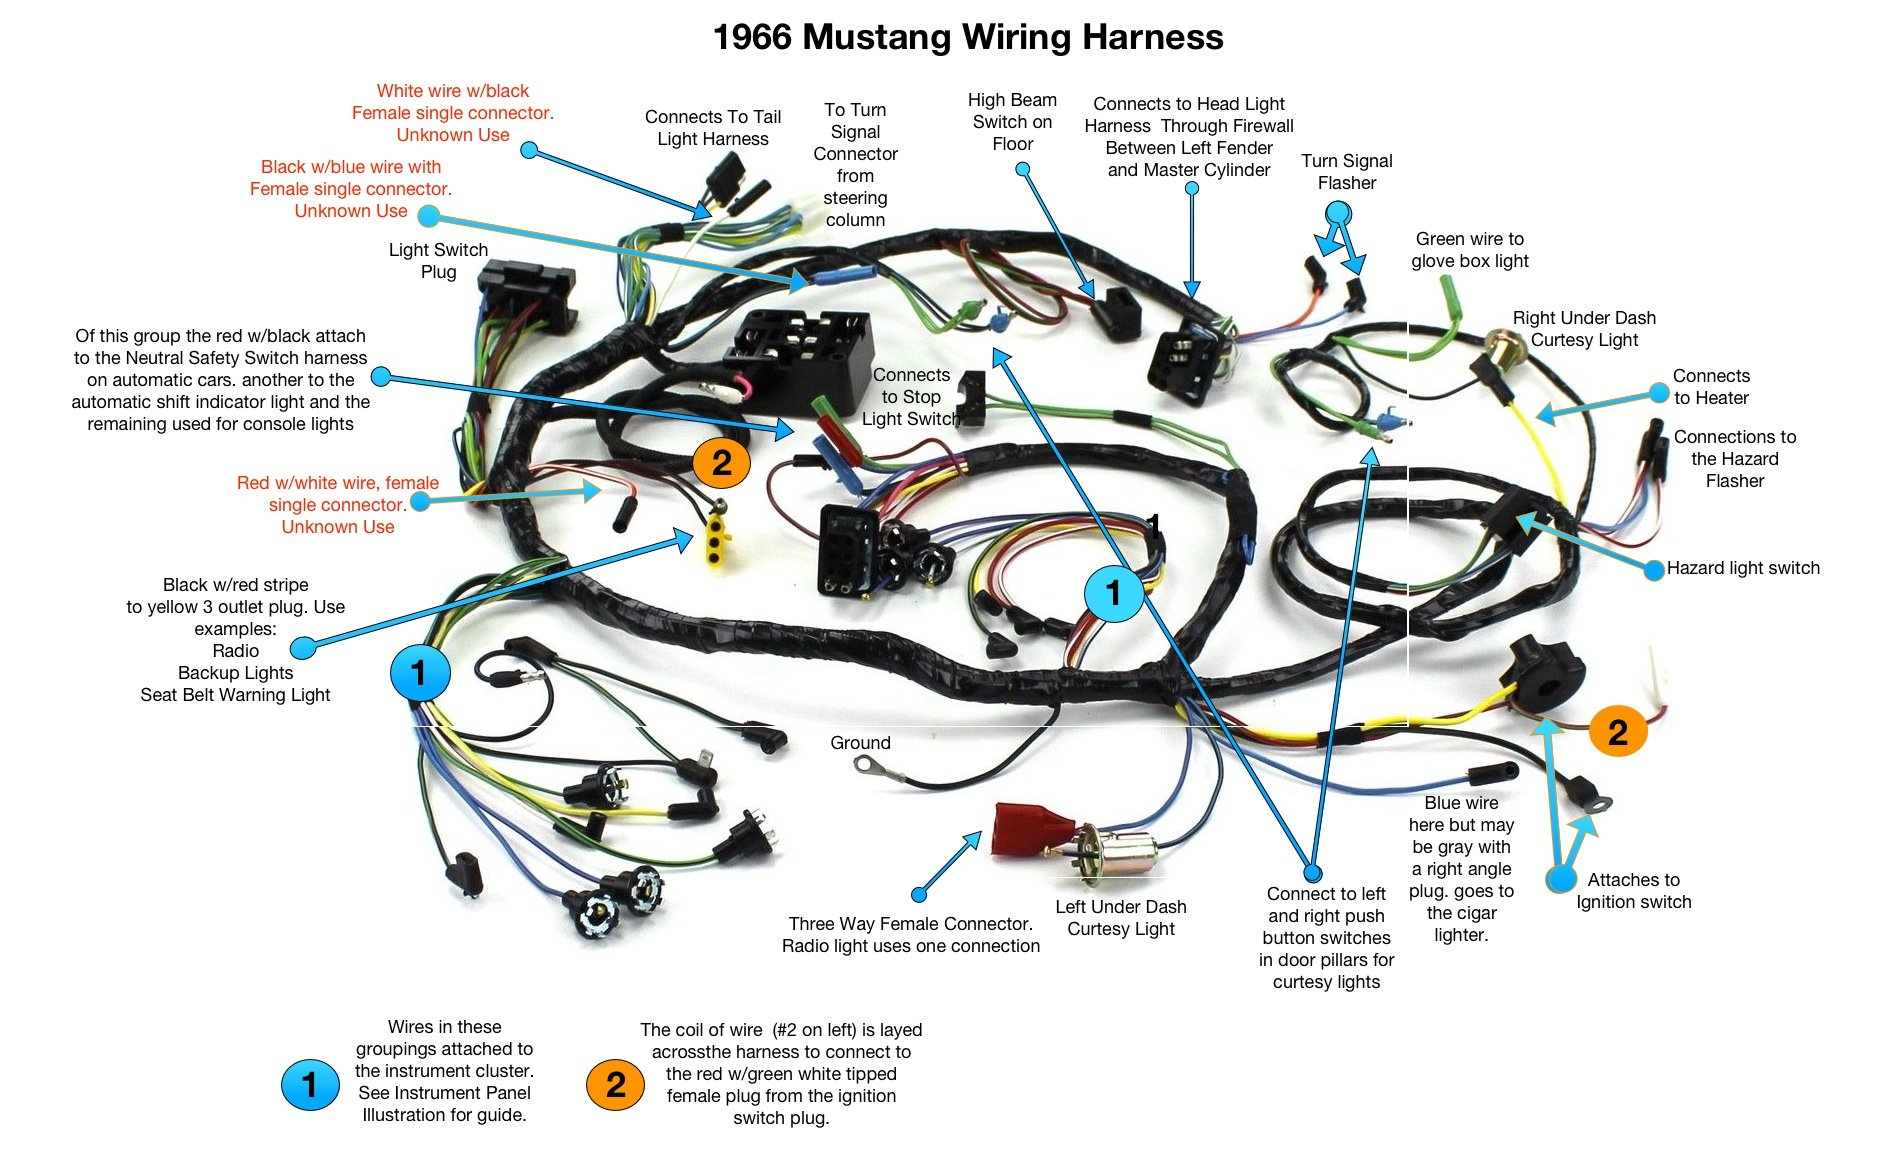 Car Wiring Harness Connection Data Diagram Today Stereo Guide Wire Diagrams Connectors Cable